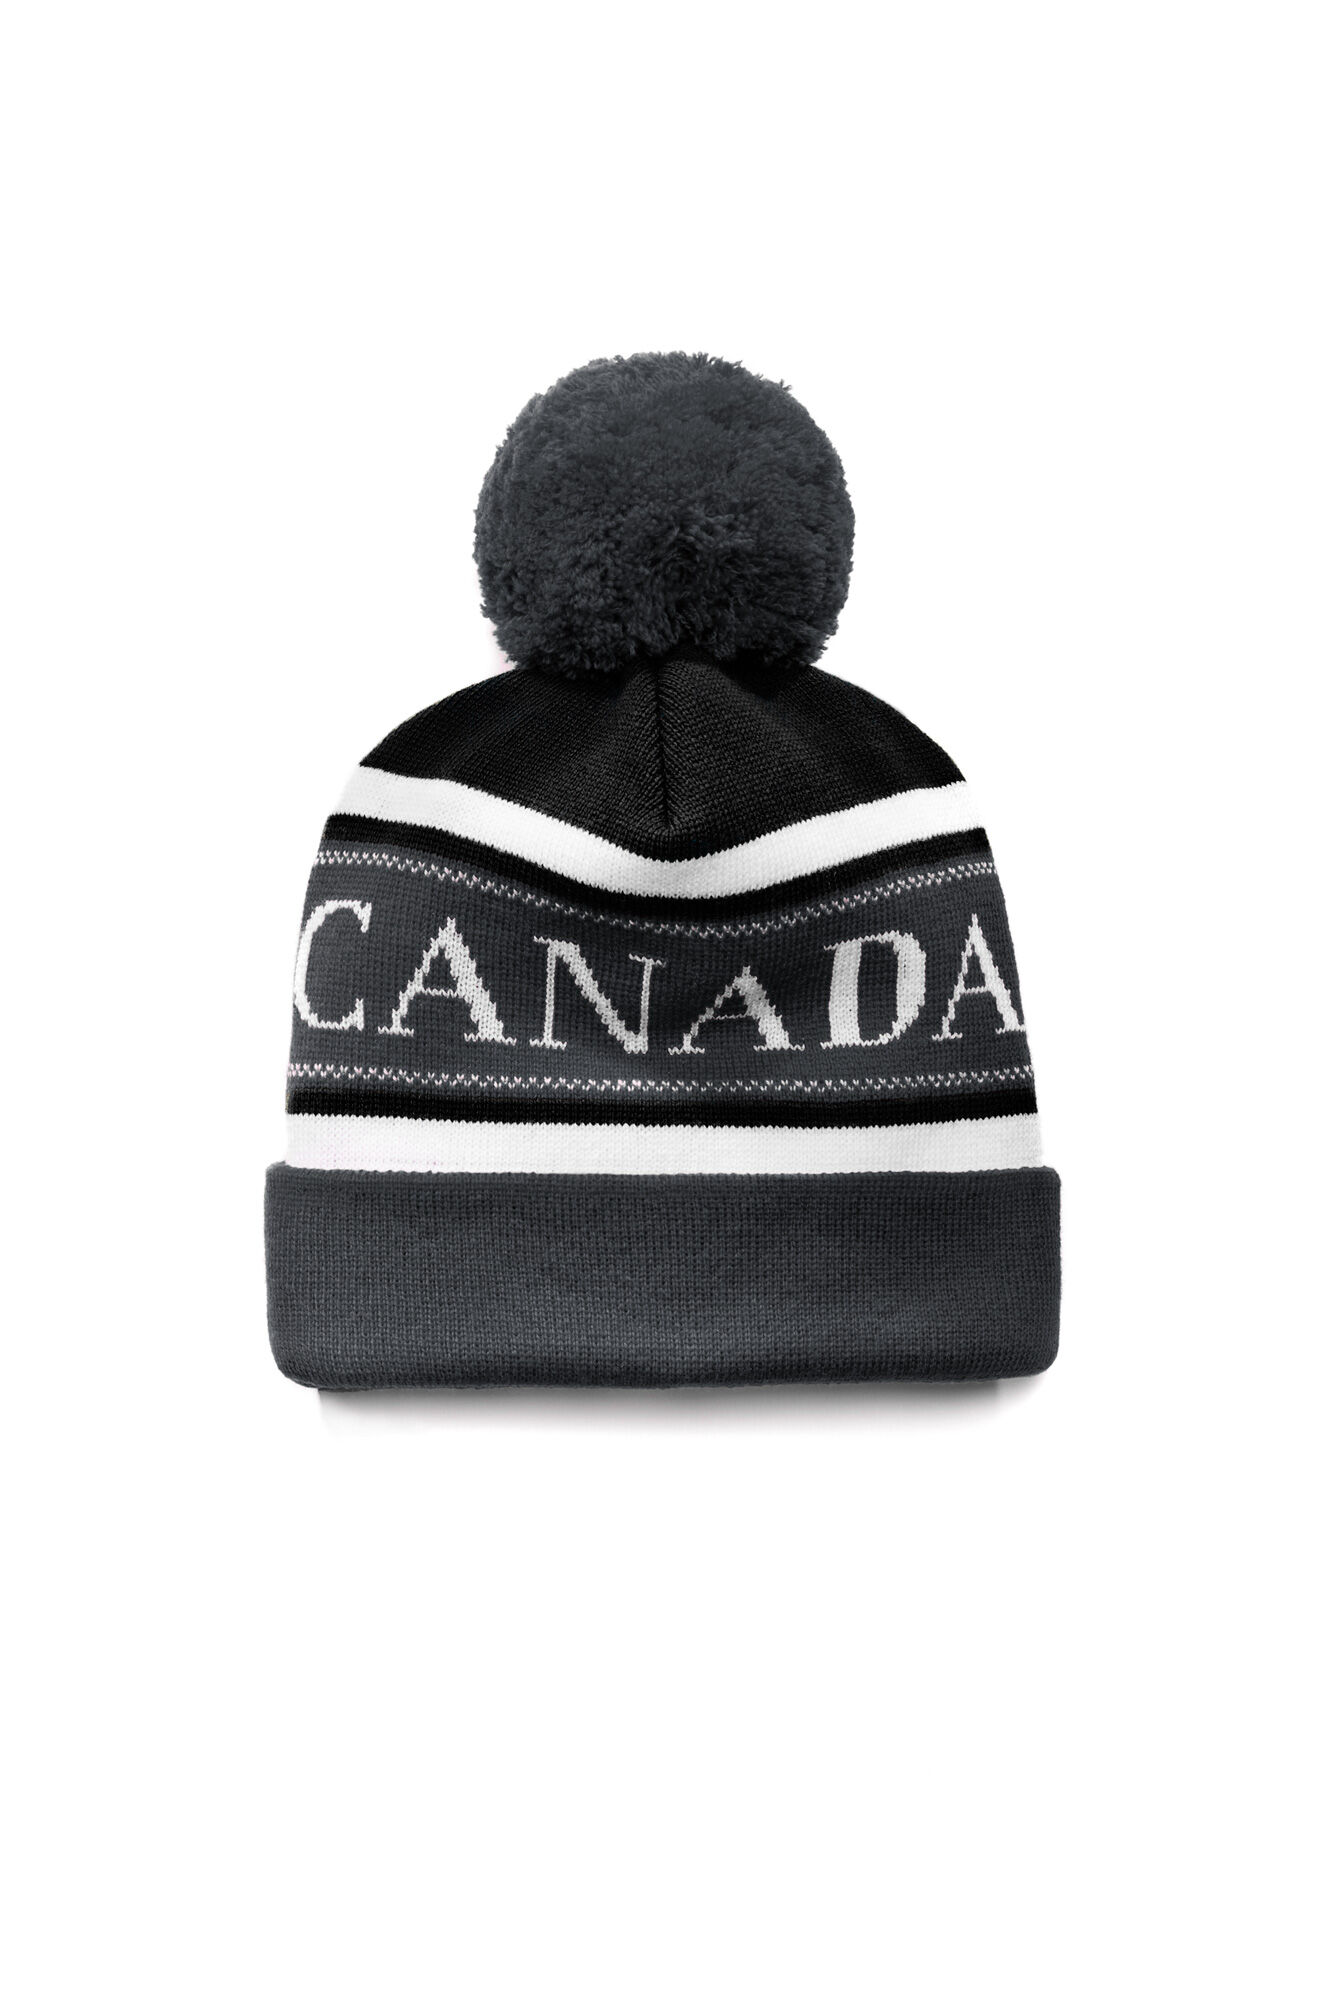 Canada Goose' hats online official